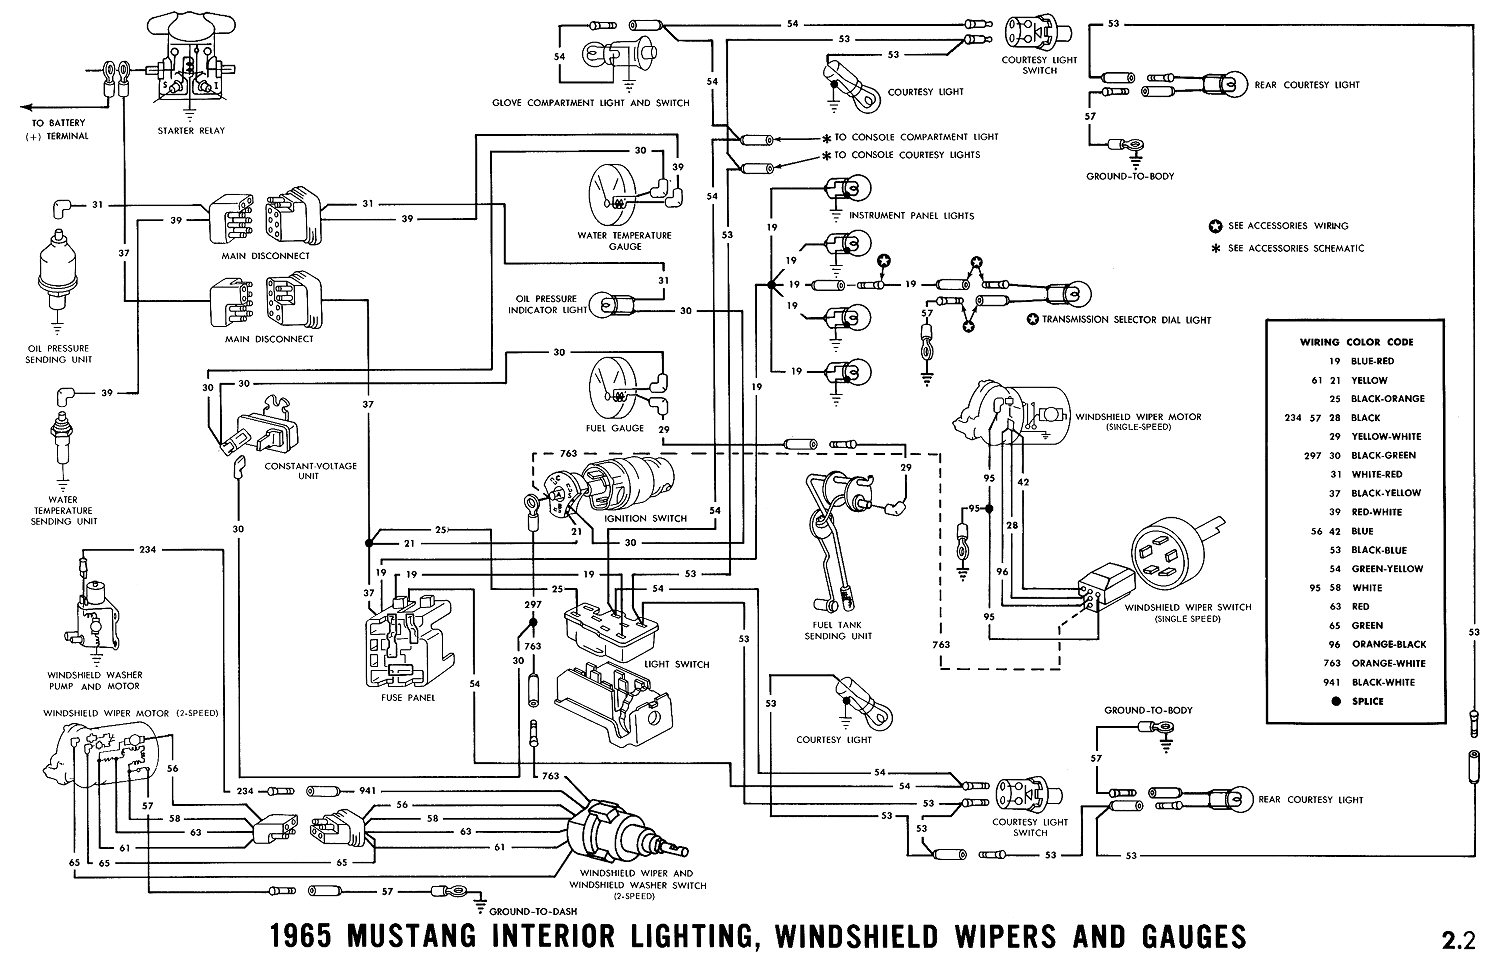 1965 Mustang Wiring Diagrams Average Joe Restoration Chevy Express Tail Light Diagram Oil Pressure